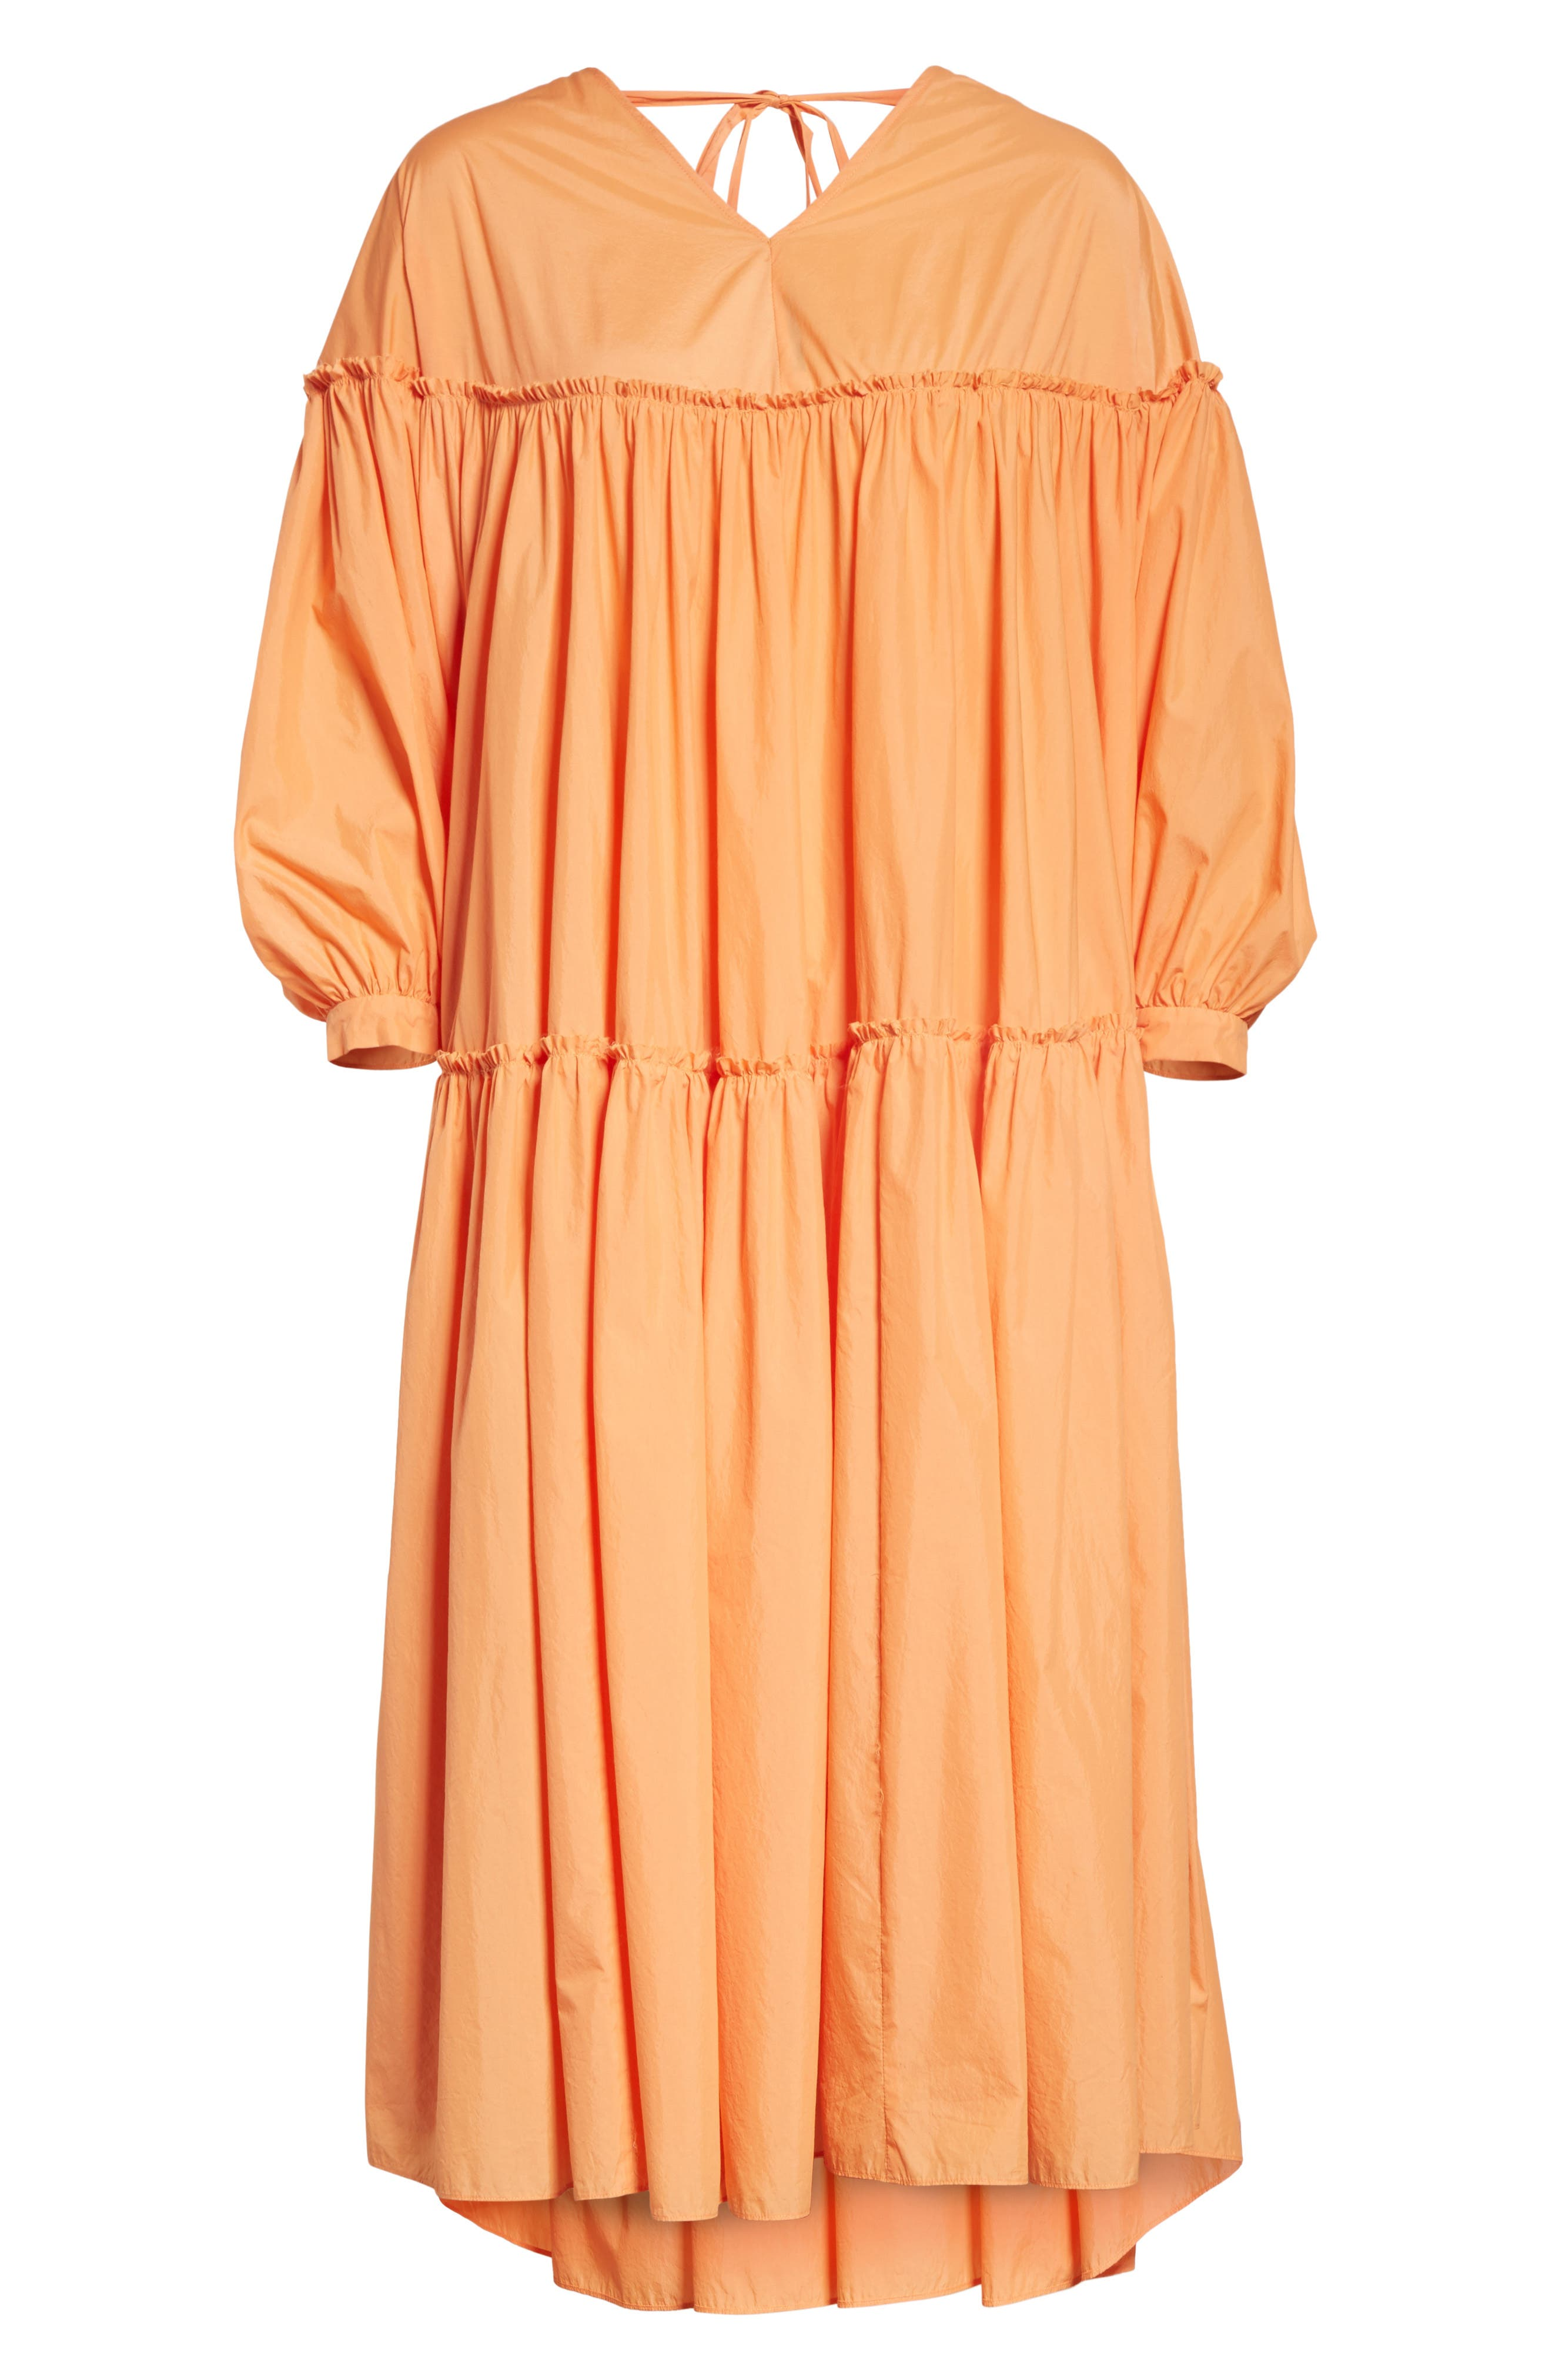 Sara Tiered Shift Dress,                             Alternate thumbnail 7, color,                             Cotton Orange